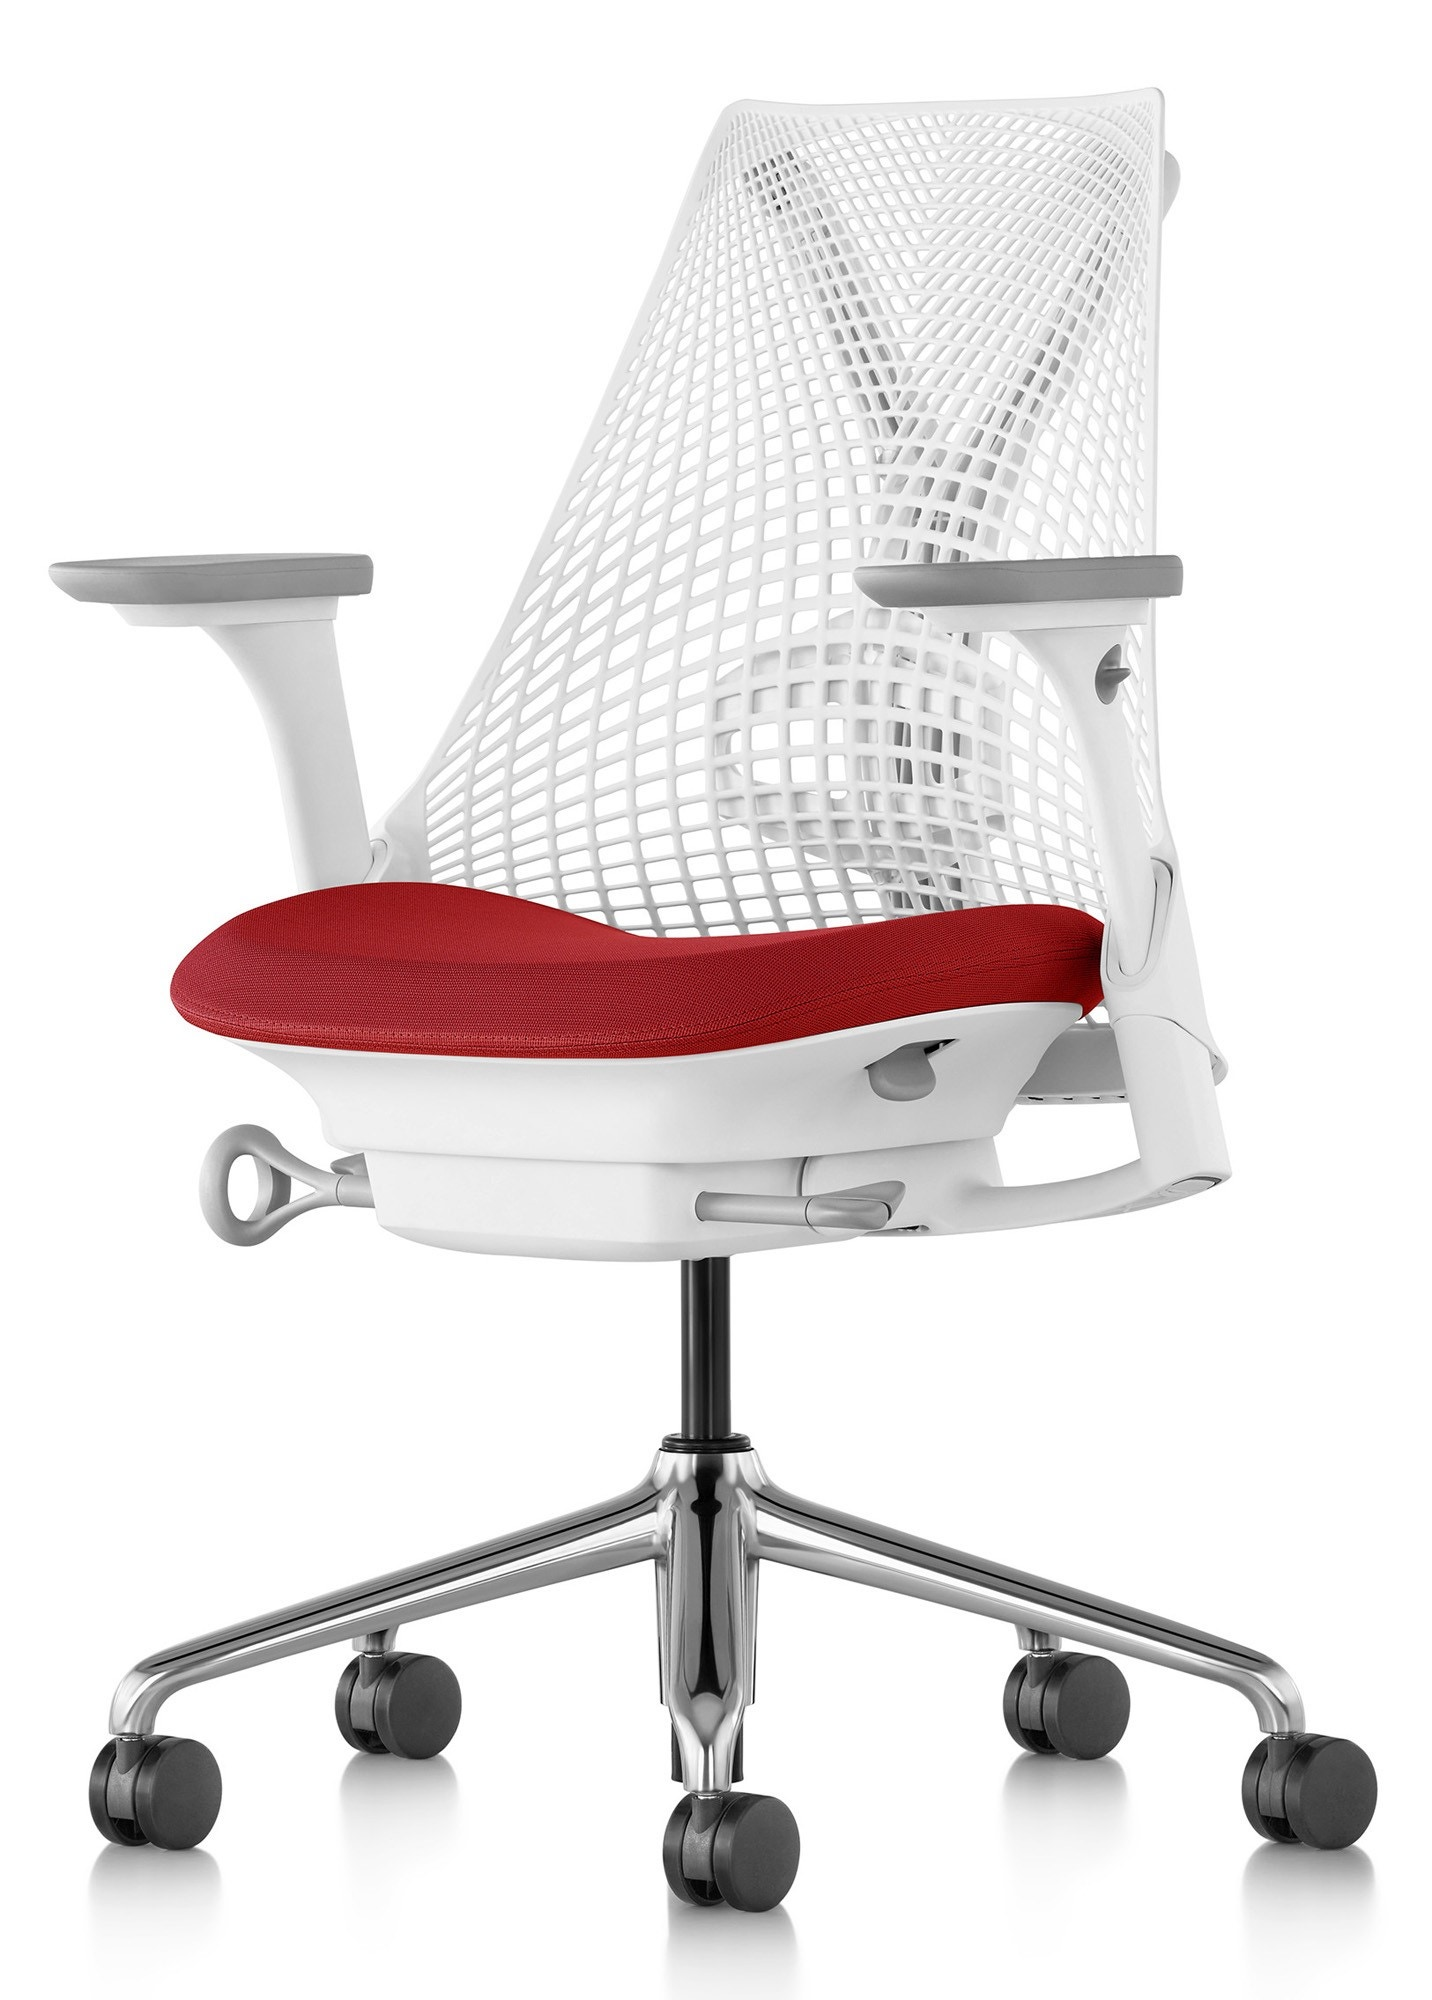 Herman miller chair - Herman Miller Sayl Chair Build Your Own